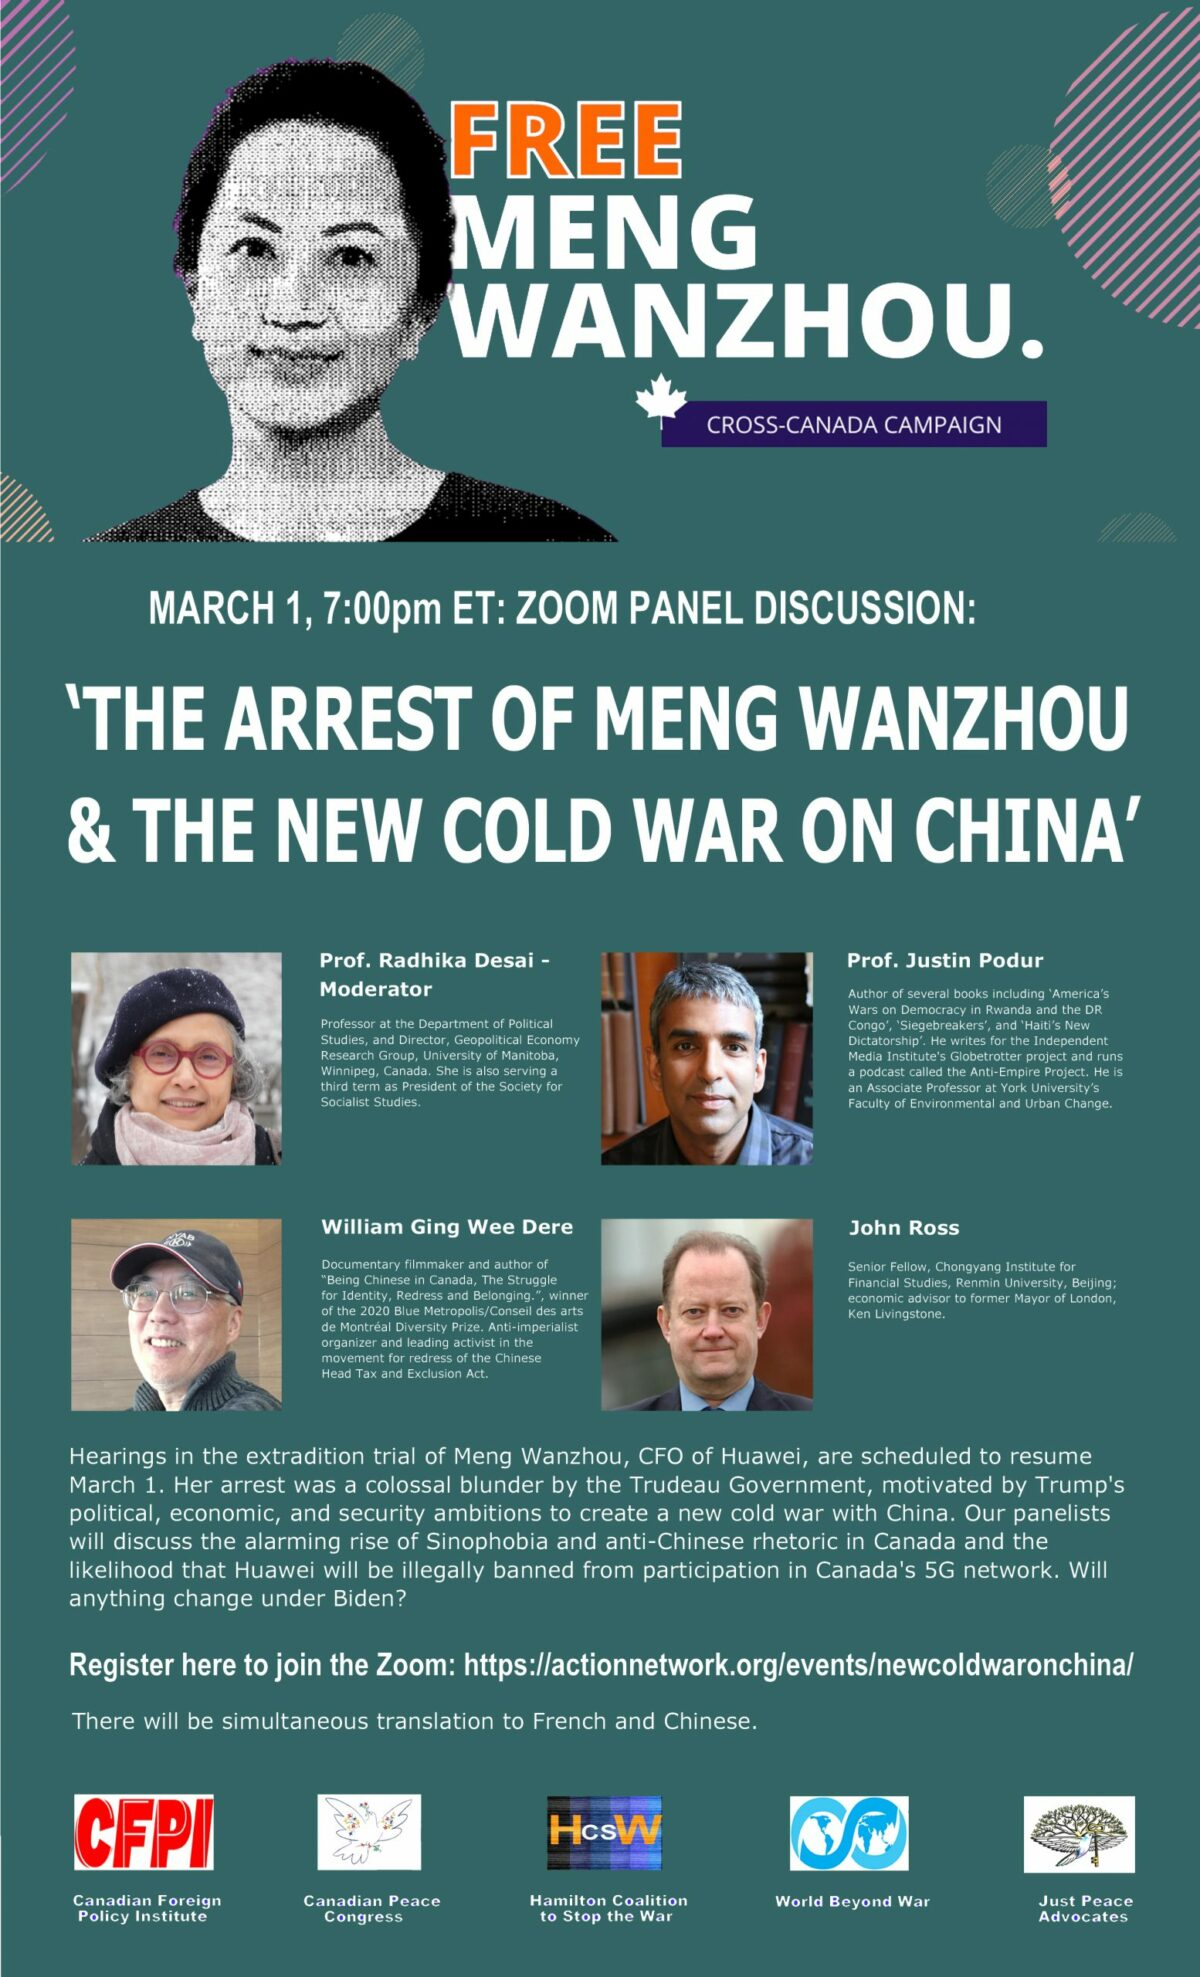 AEP 80: My comments on The Arrest of Meng Wanzhou and the New Cold War on China